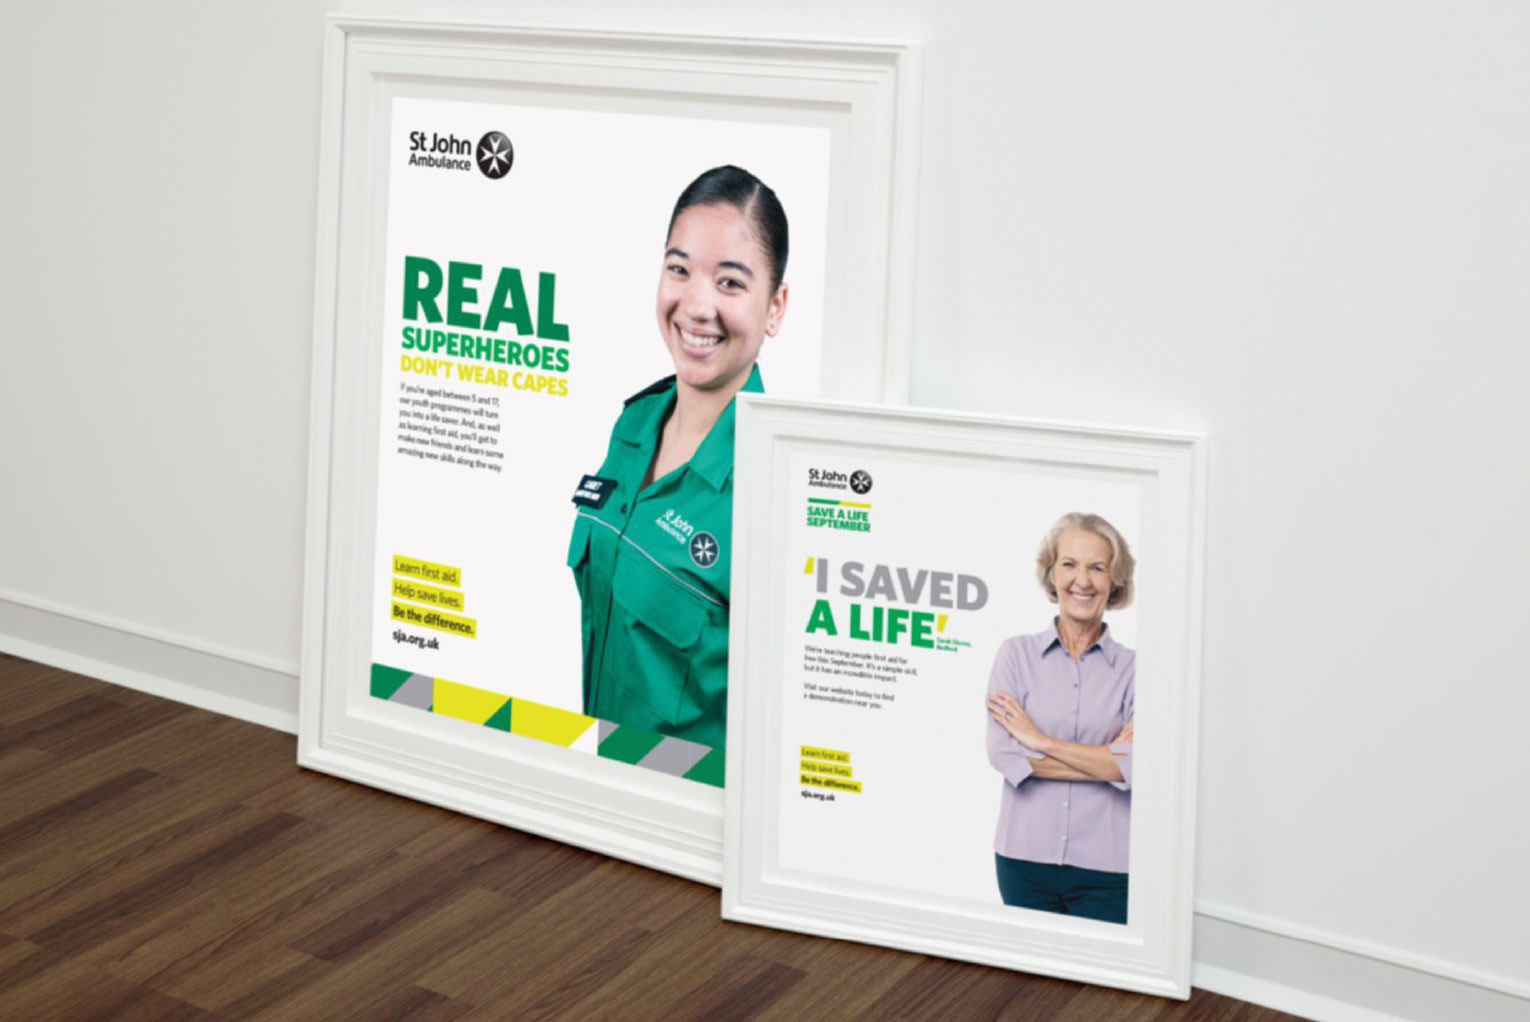 Image showing posters using the new brand identity